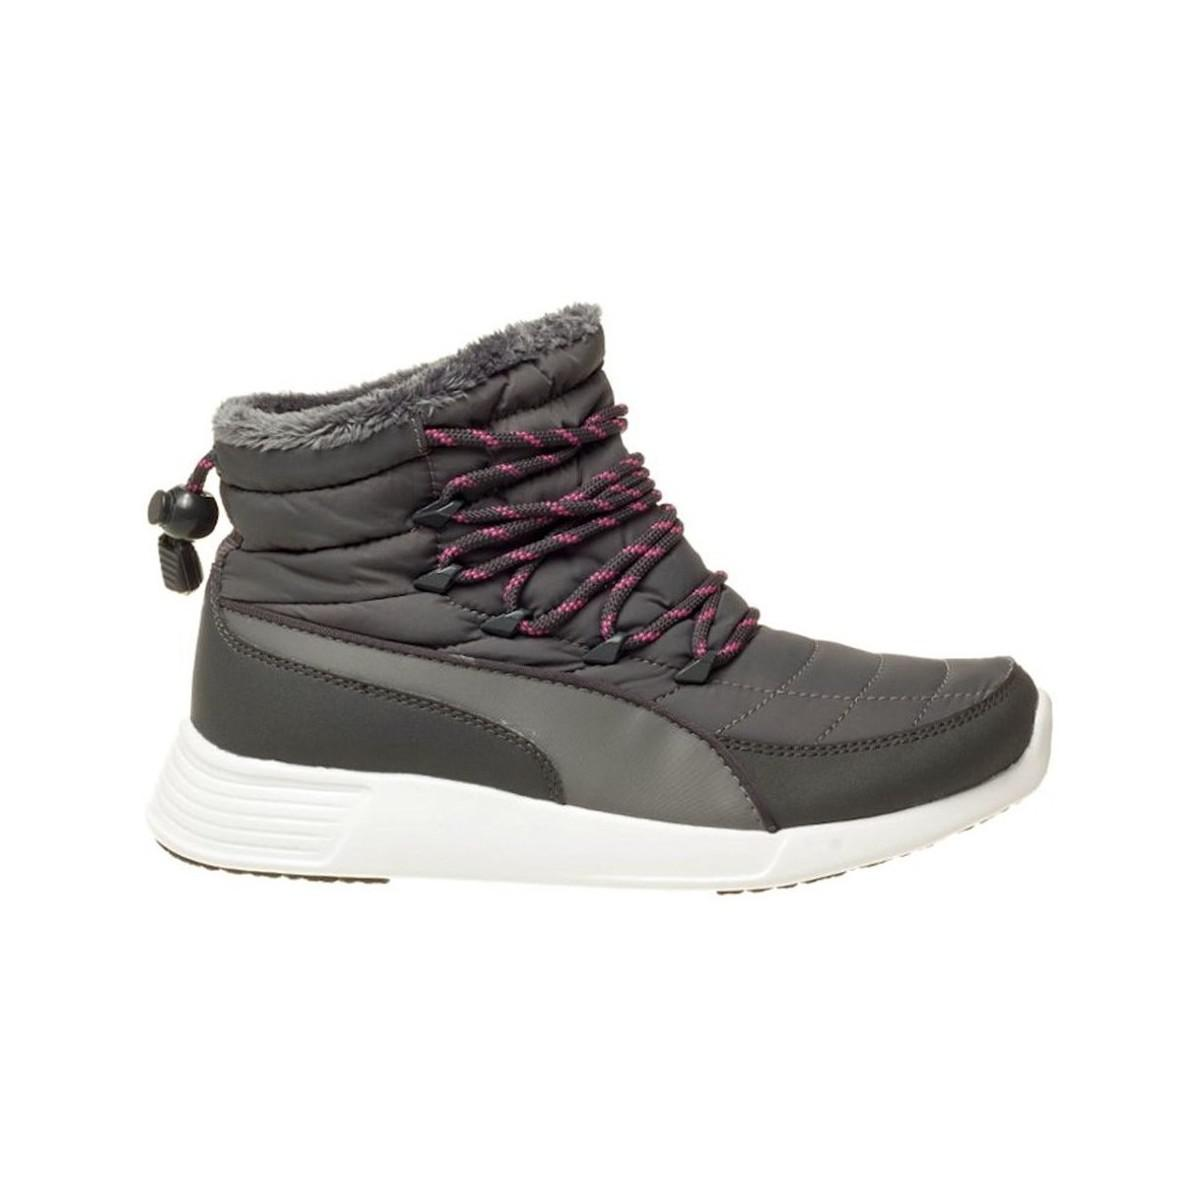 7a27f30e2627ea Lyst - Puma St Winter Boot Wmns Women s Shoes (high-top Trainers) In ...